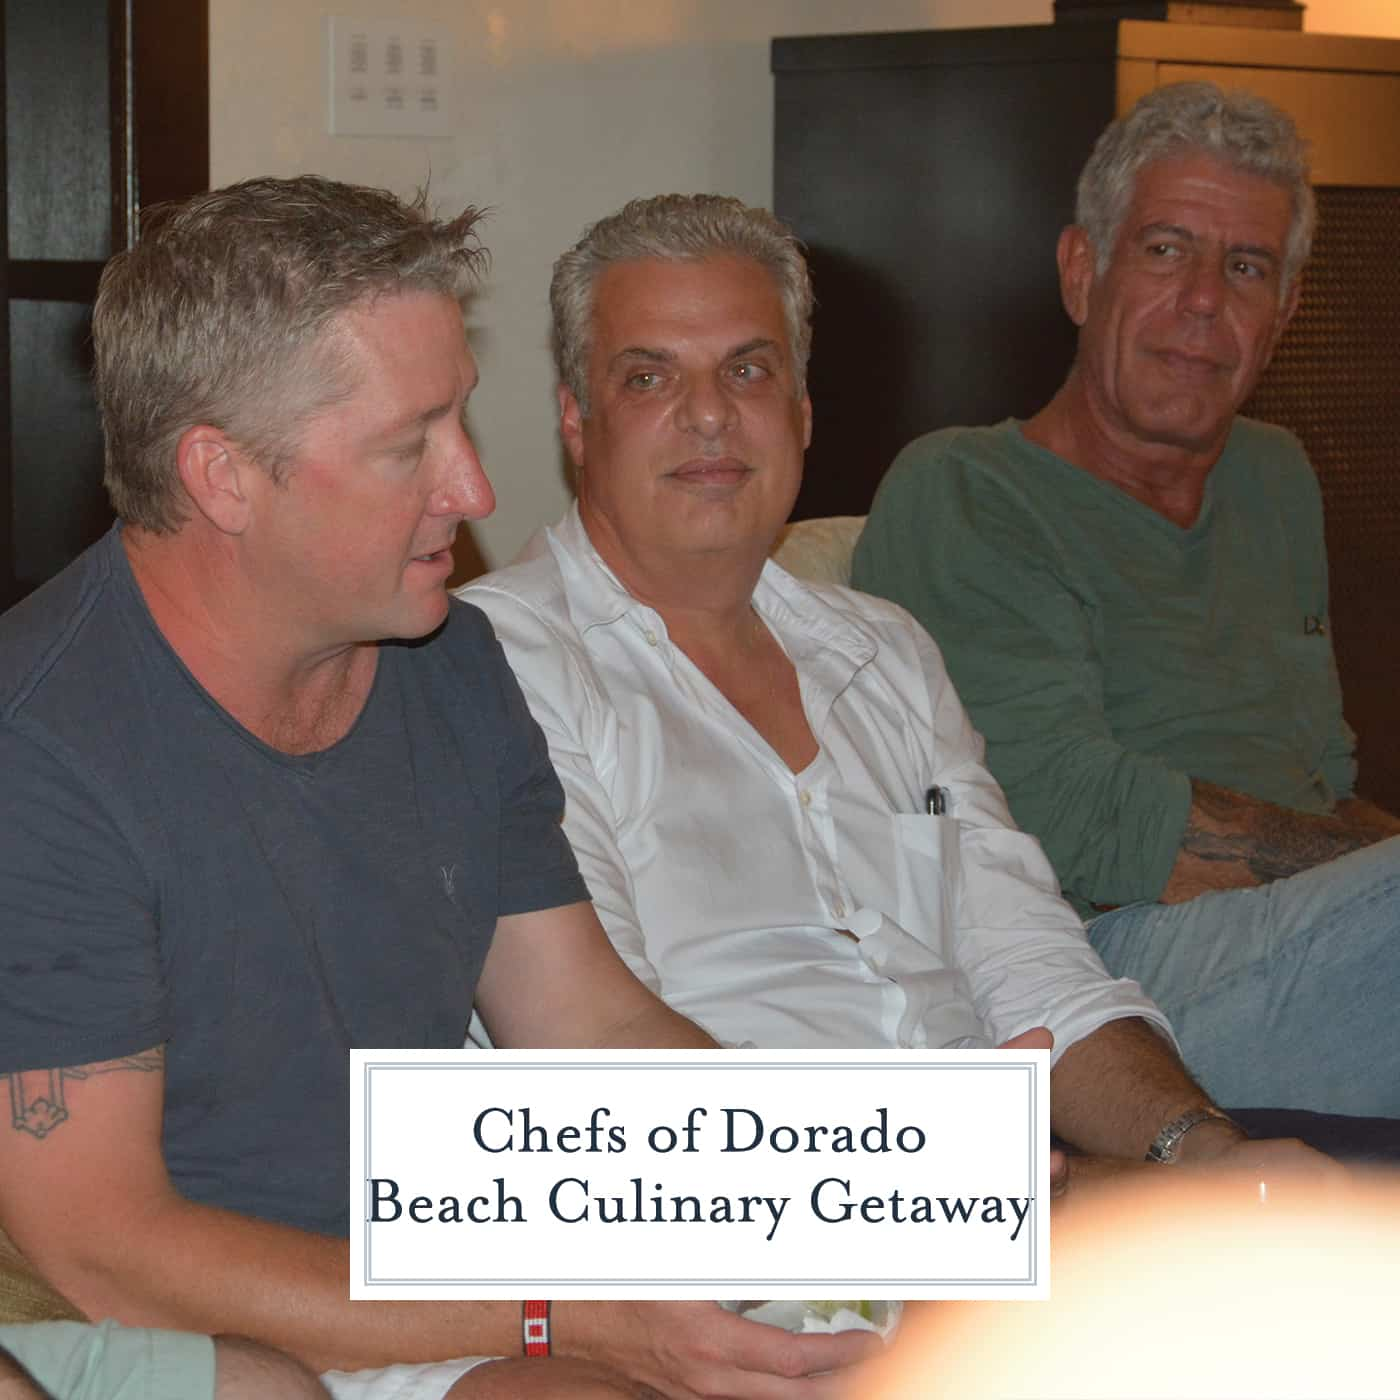 Meet the Chefs of the Dorado Beach Culinary Getaway: Jose Andres, Anthony Bourdain, Tim Love and Eric Ripert. www.savoryexperiments.com